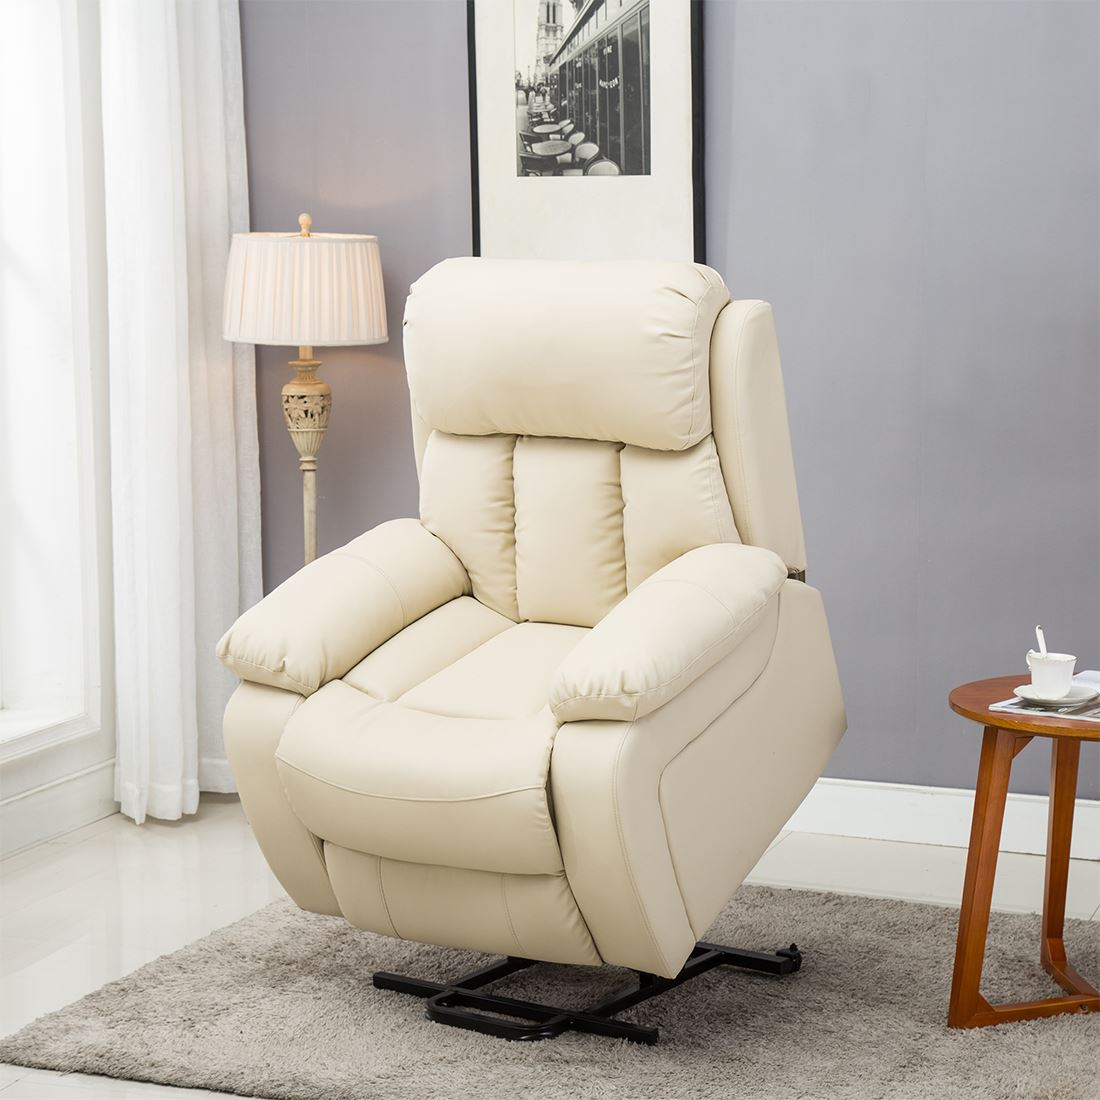 CHESTER-ELECTRIC-RISE-LEATHER-RECLINER-POWER-ARMCHAIR-HEATED-MASSAGE-SOFA-CHAIR thumbnail 19